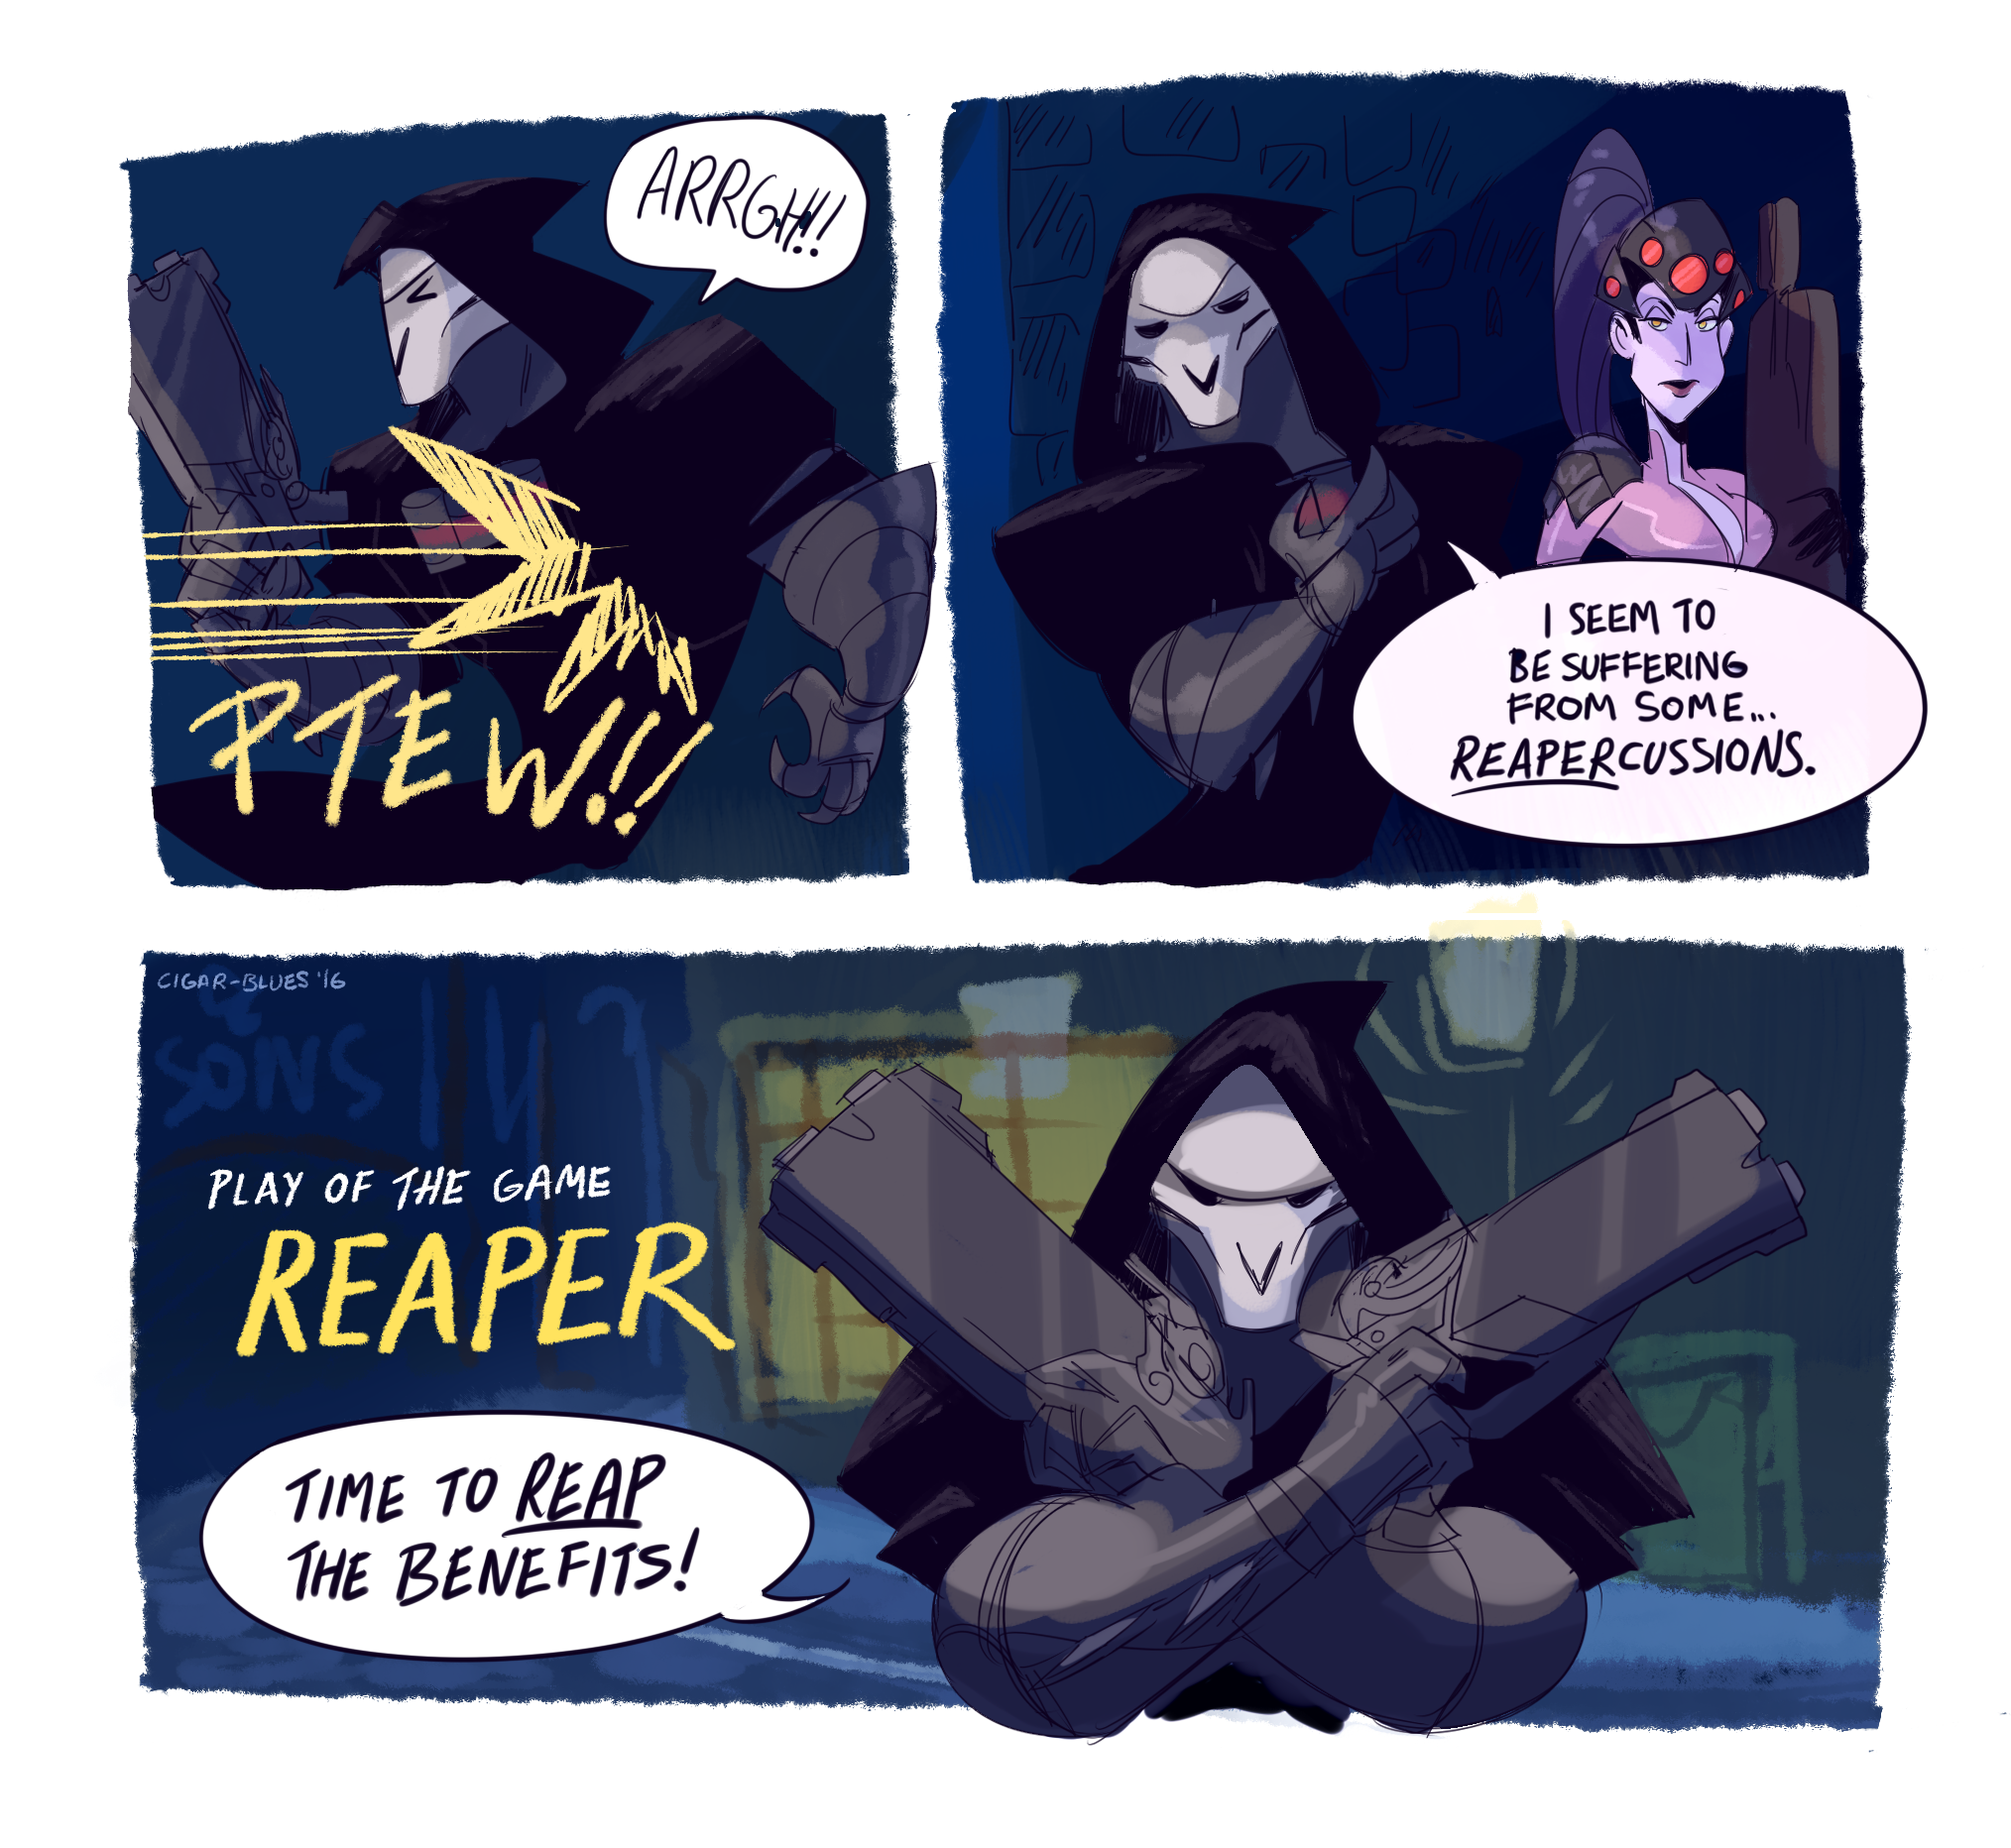 """Cig On Twitter: """"gabe Gets Really Into His Reaper Persona"""